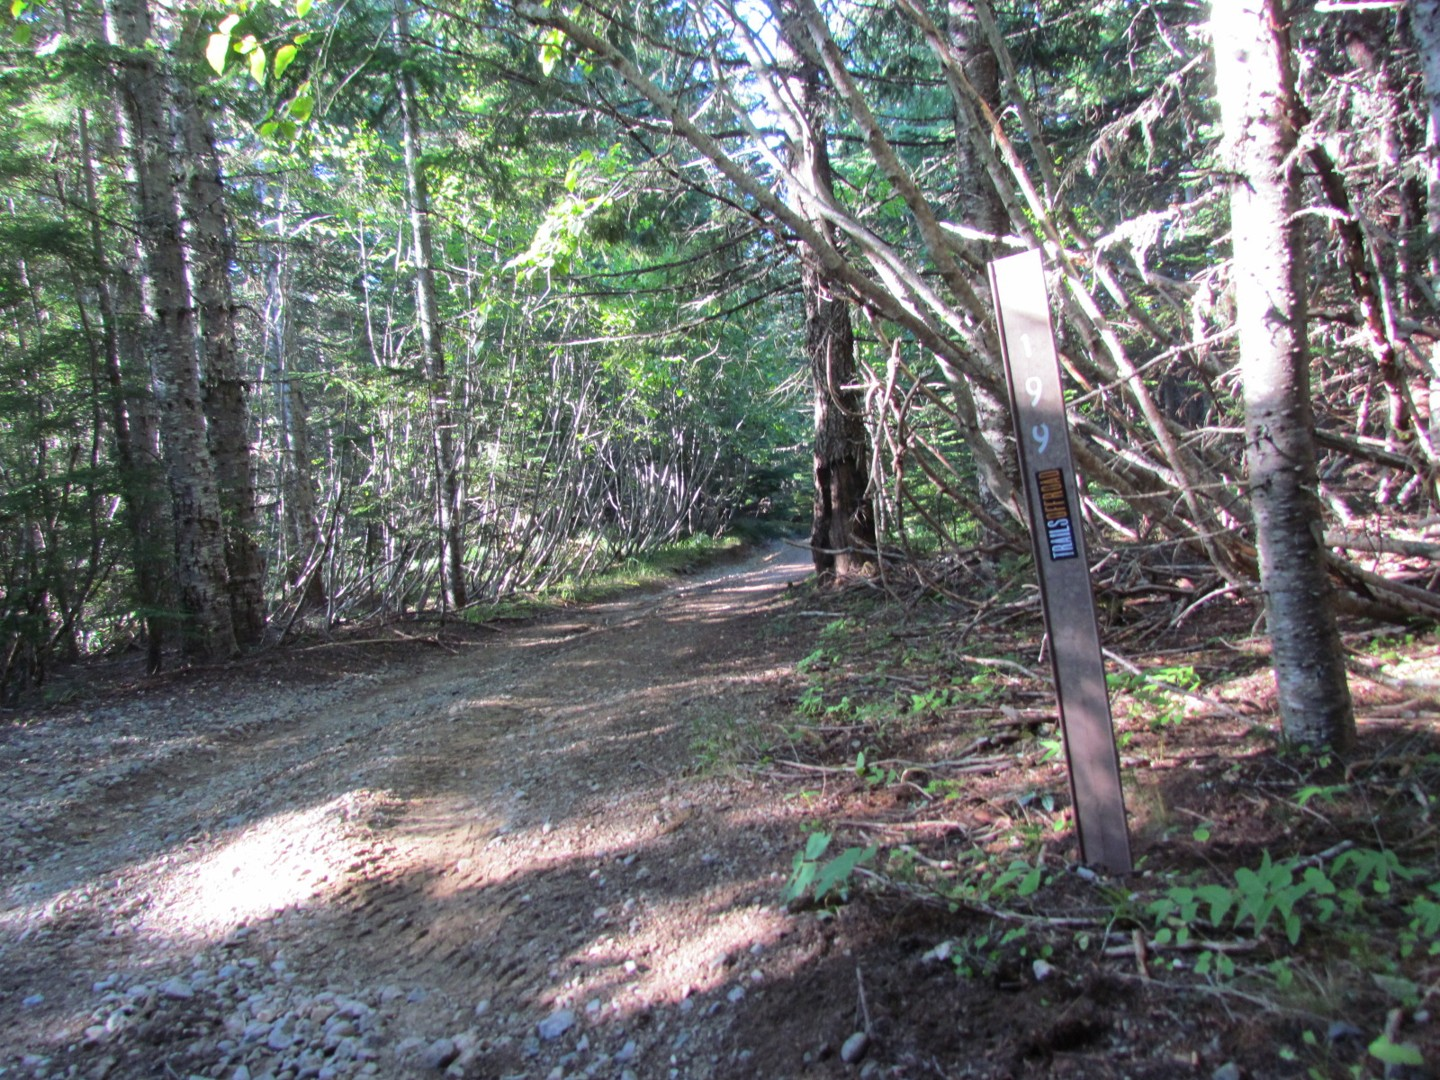 Evans Creek / Trail #519 - Waypoint 9: Trail Intersection / #199 / Straight